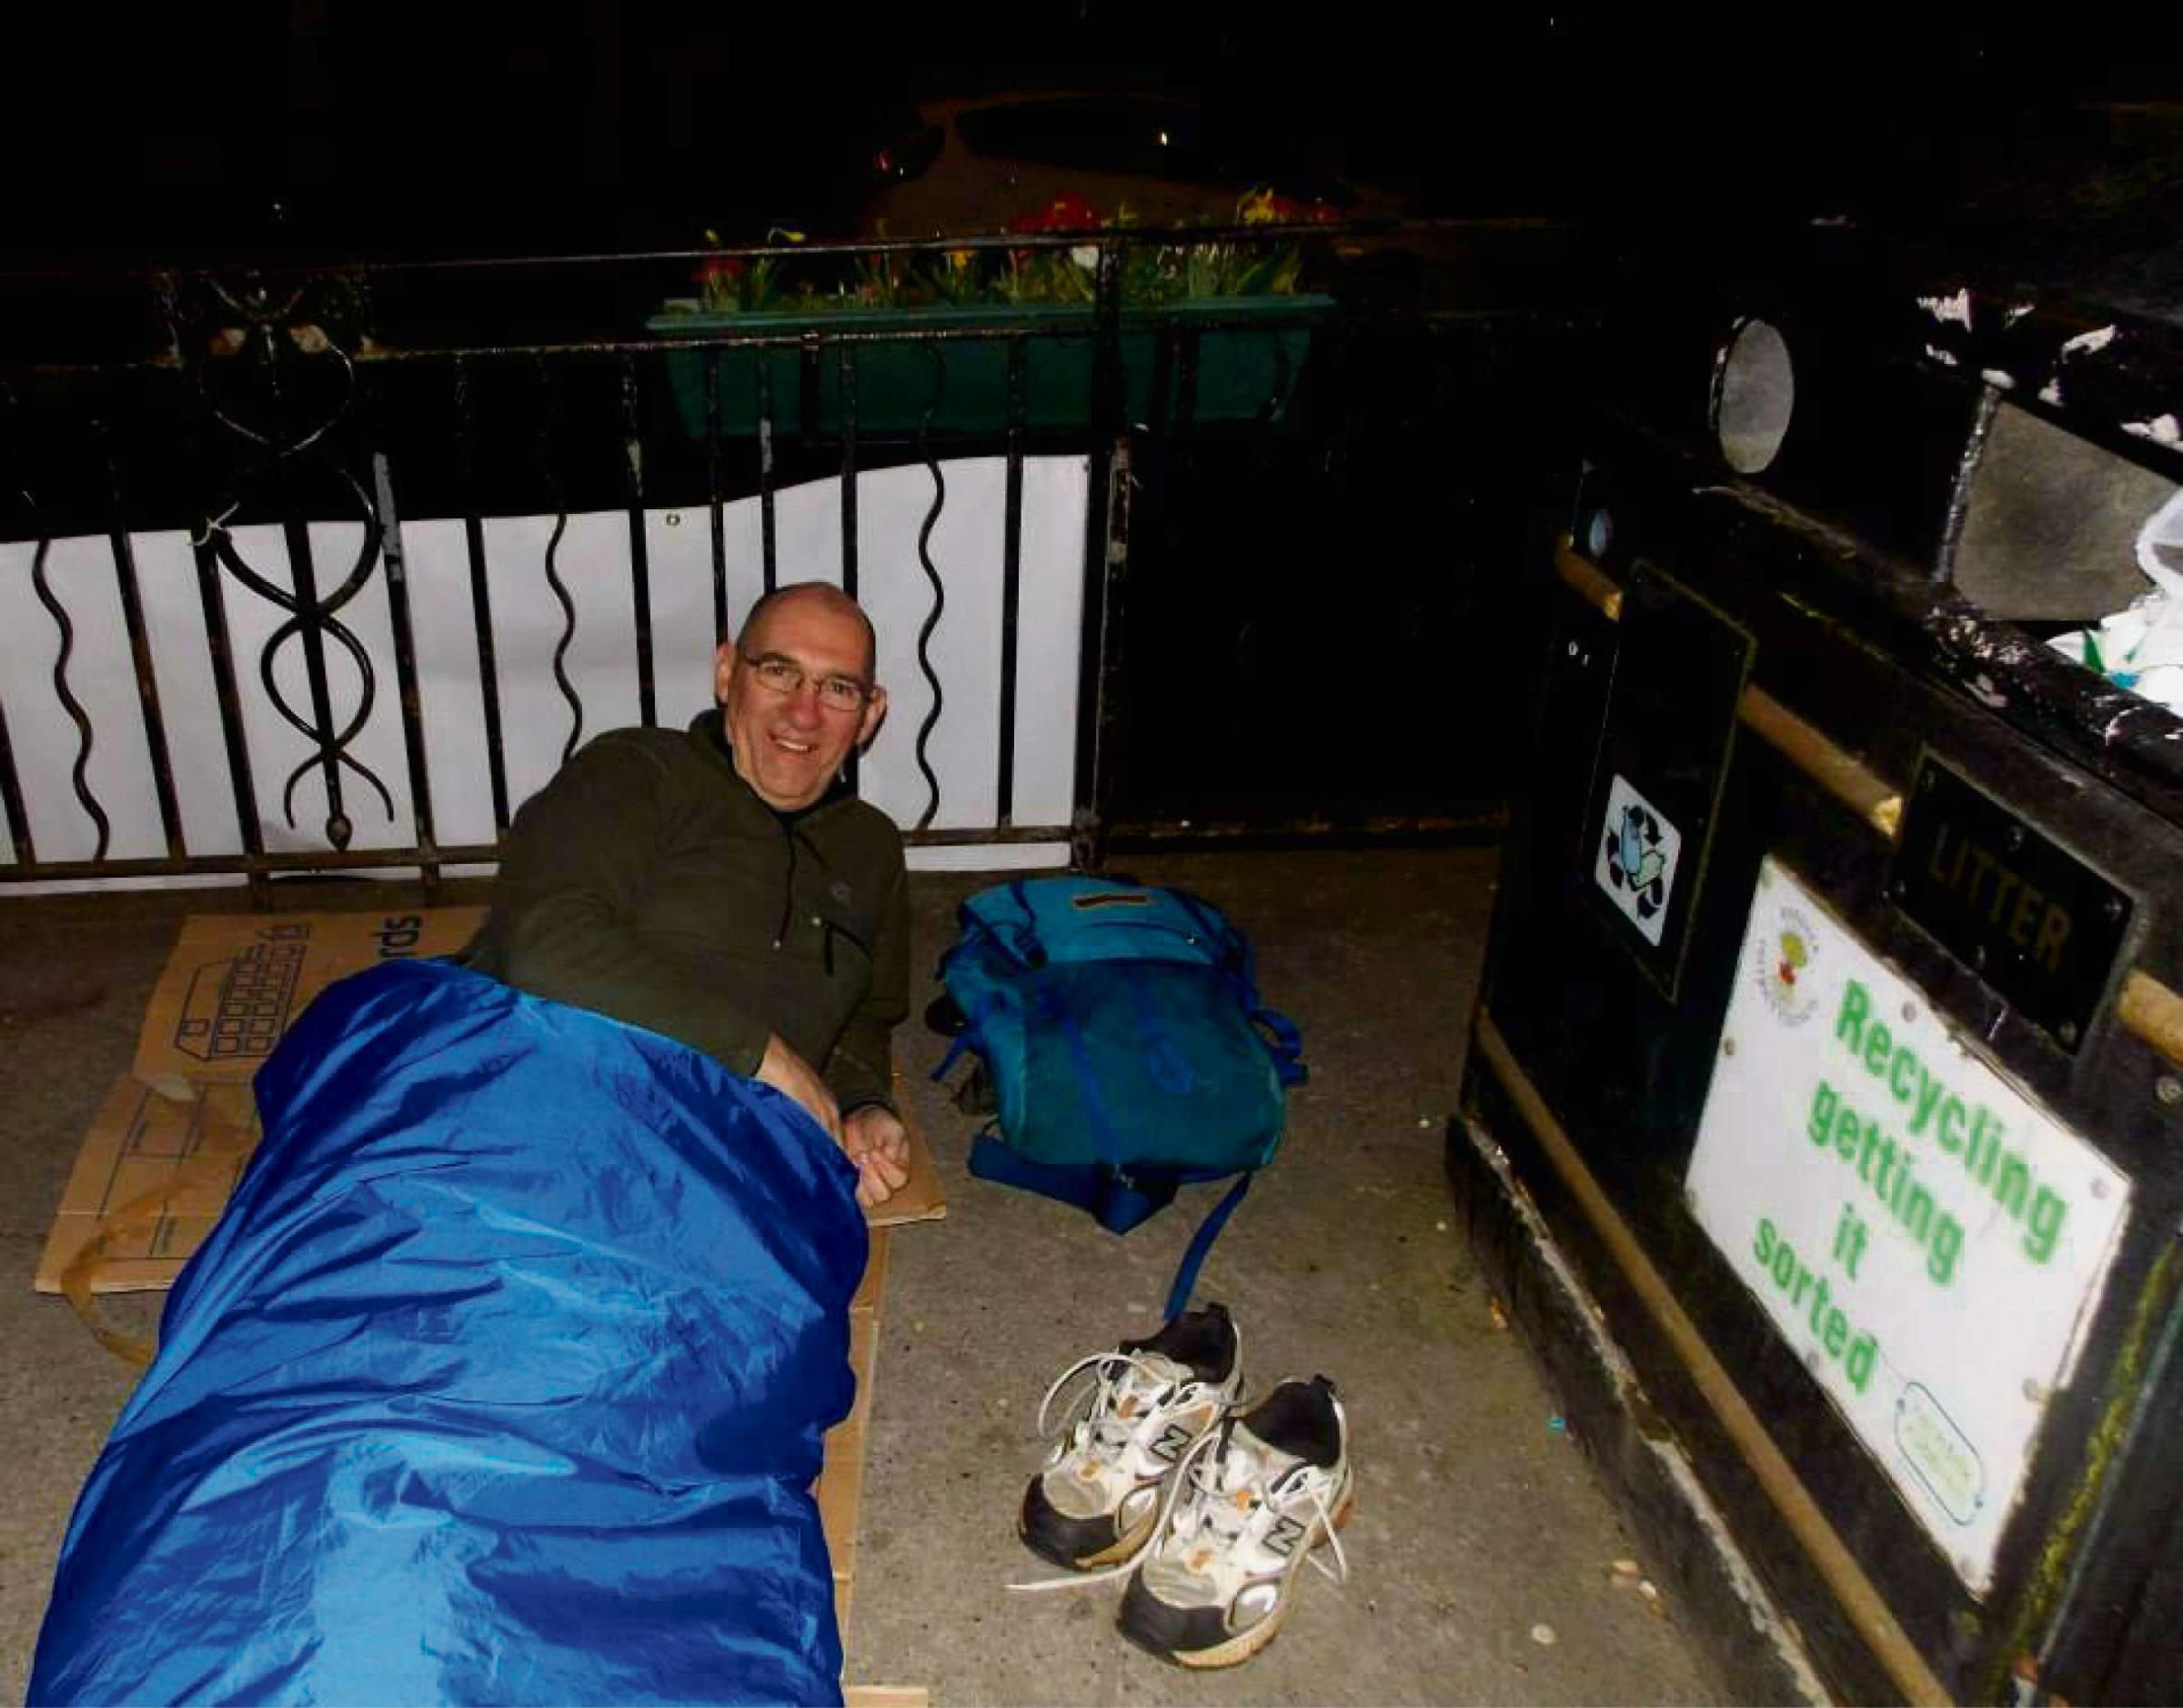 One of the people who took part in the sleepout in Kirkbymoorside, which raised more than £2,000